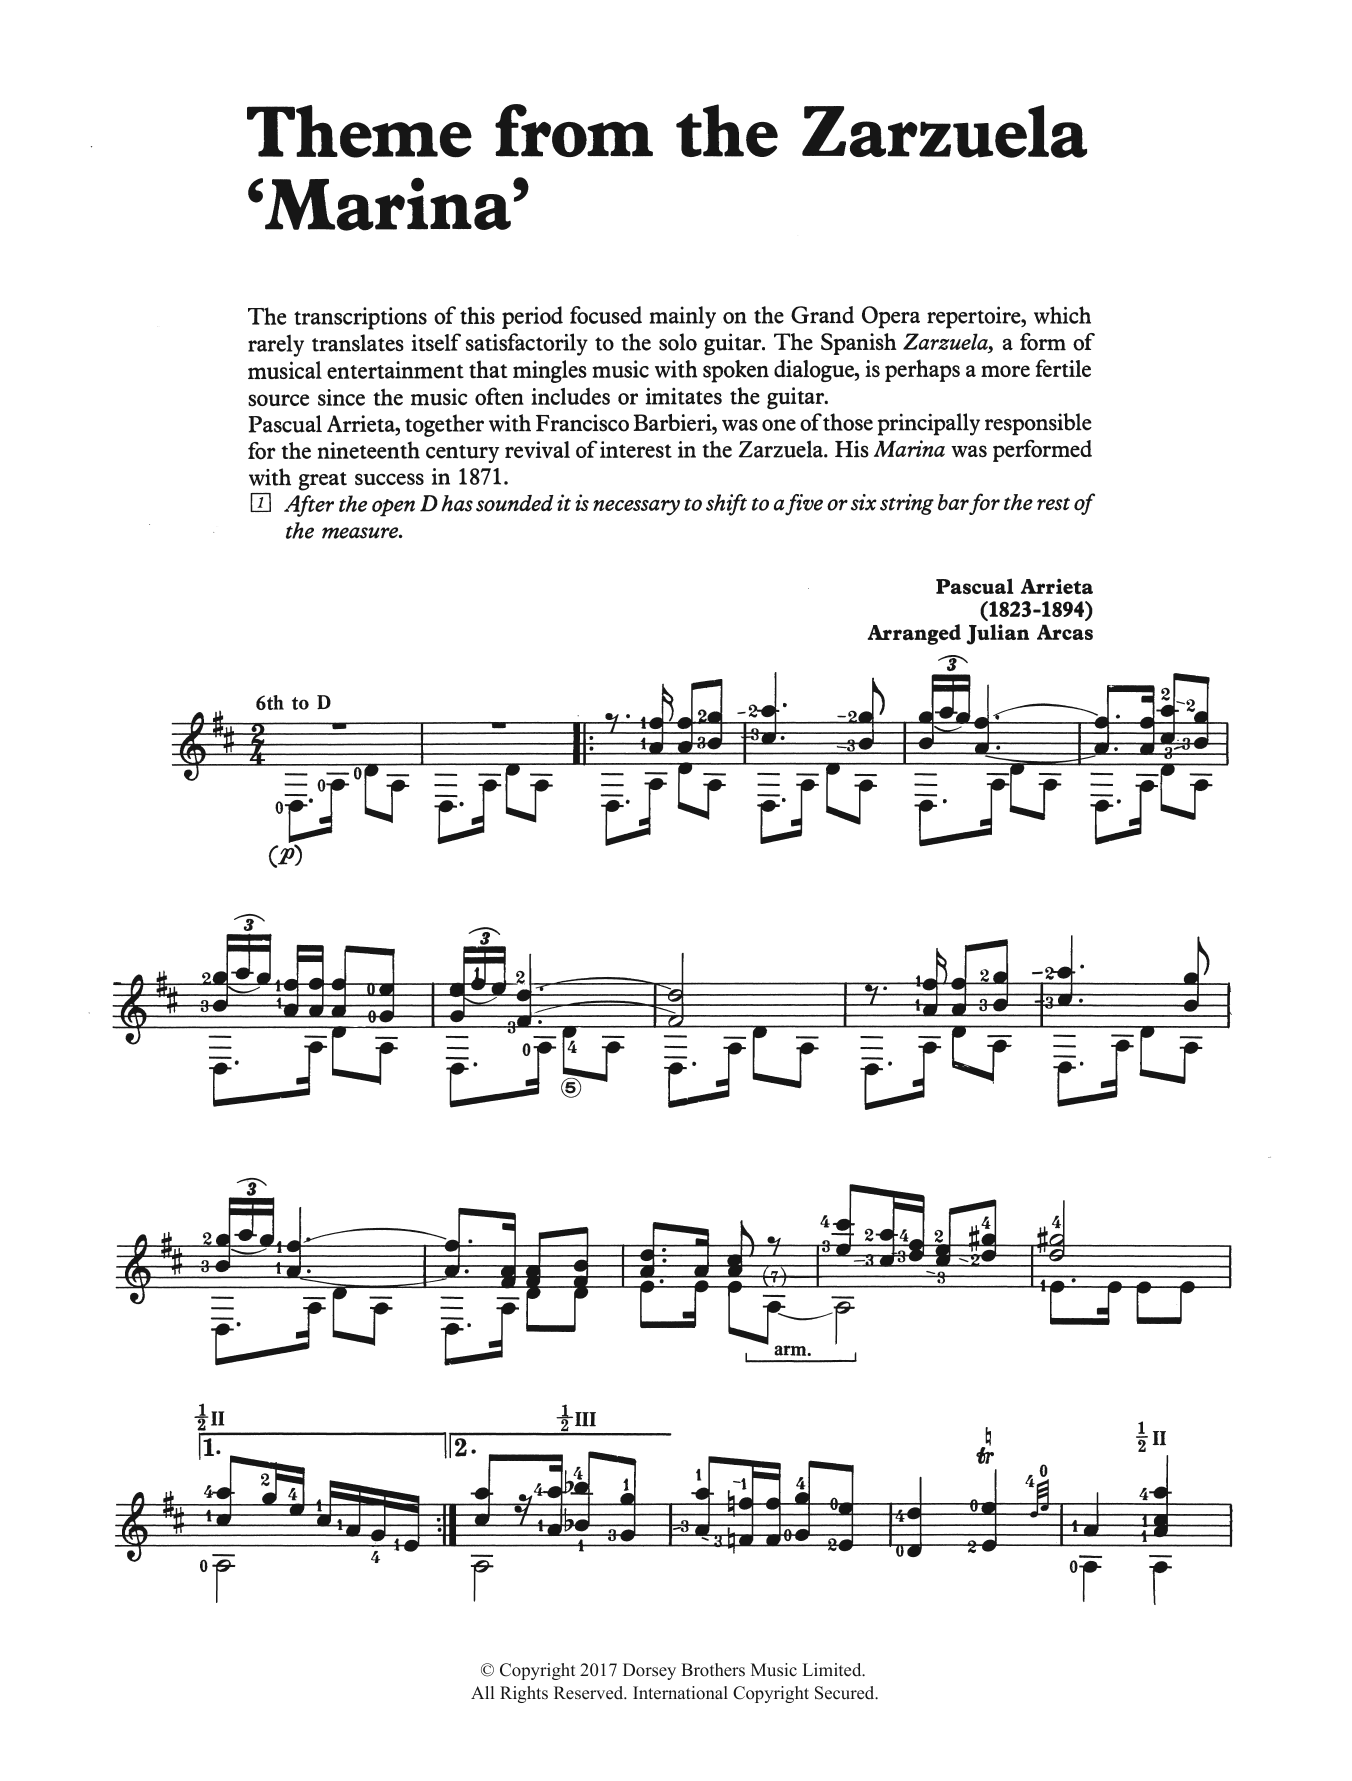 Theme from the Zarzuela 'Marina' Sheet Music